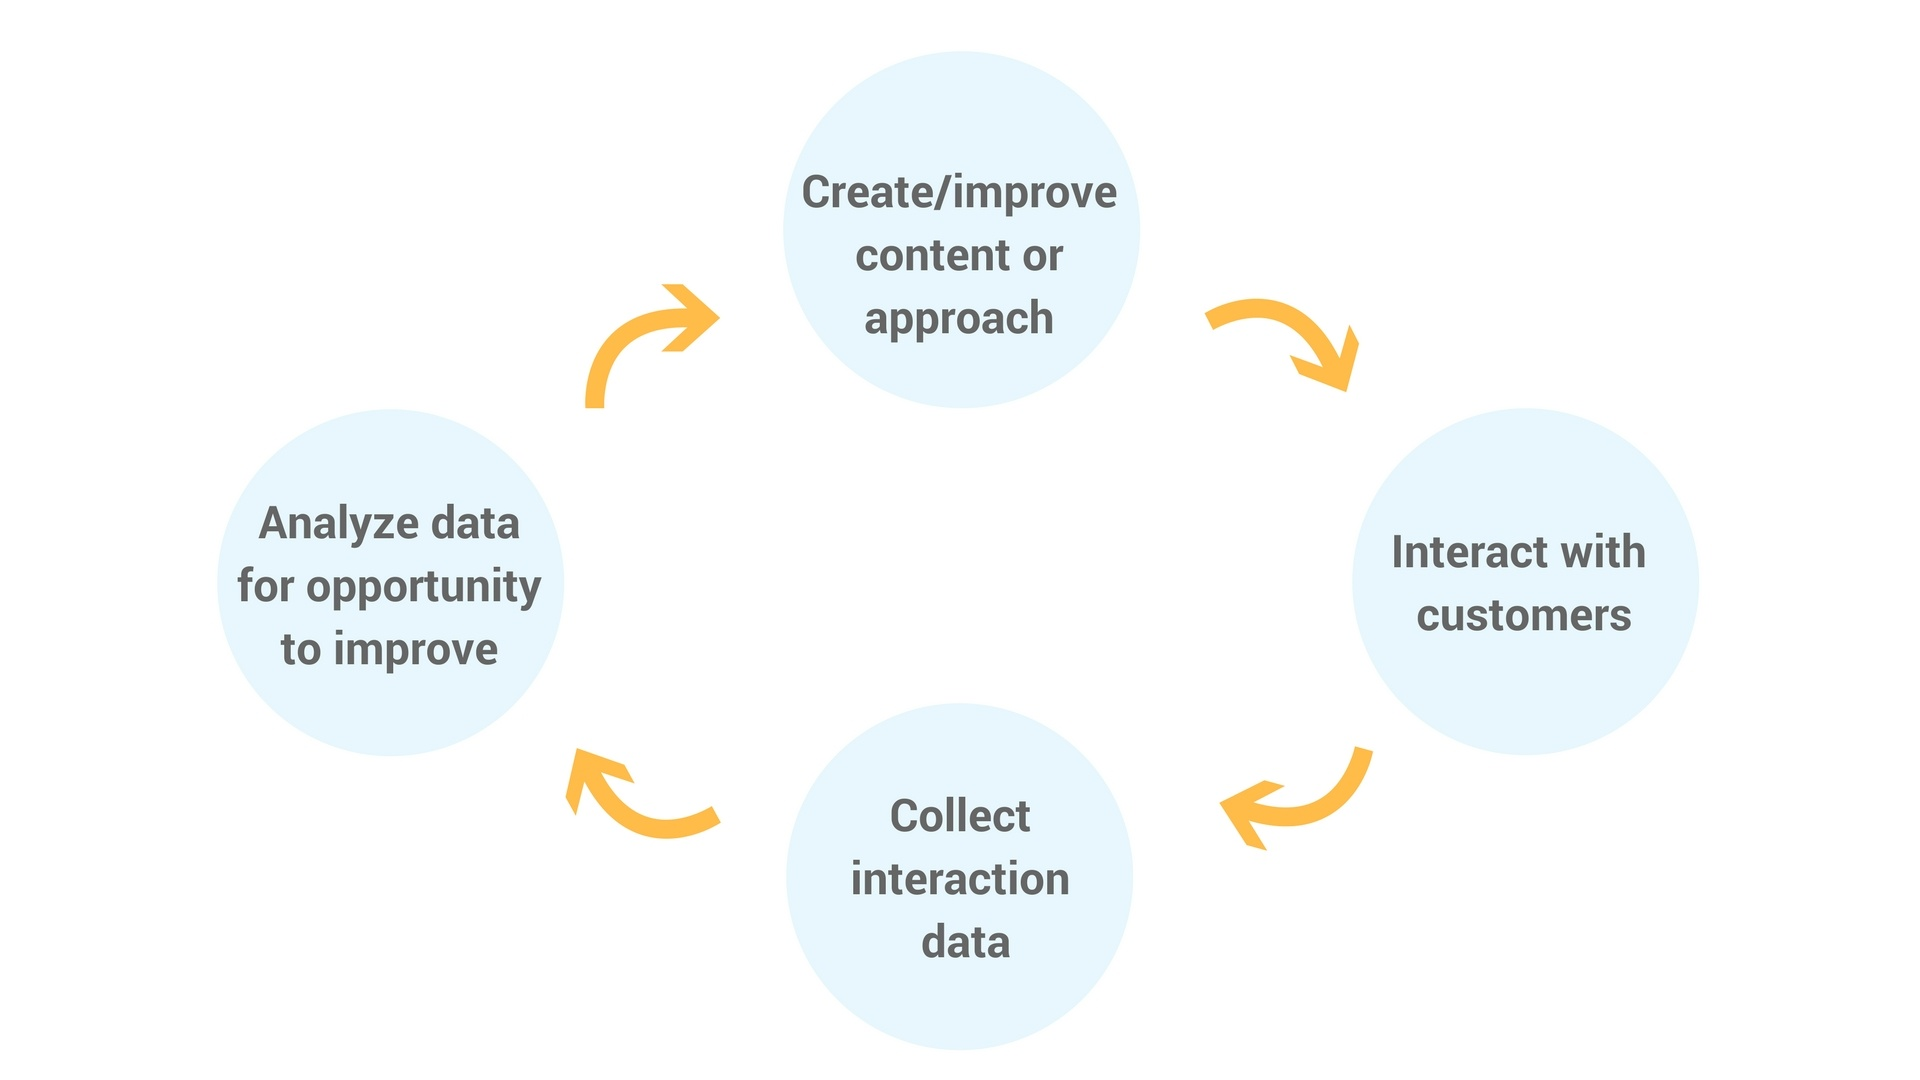 digital-content-data-collect-interaction.jpg